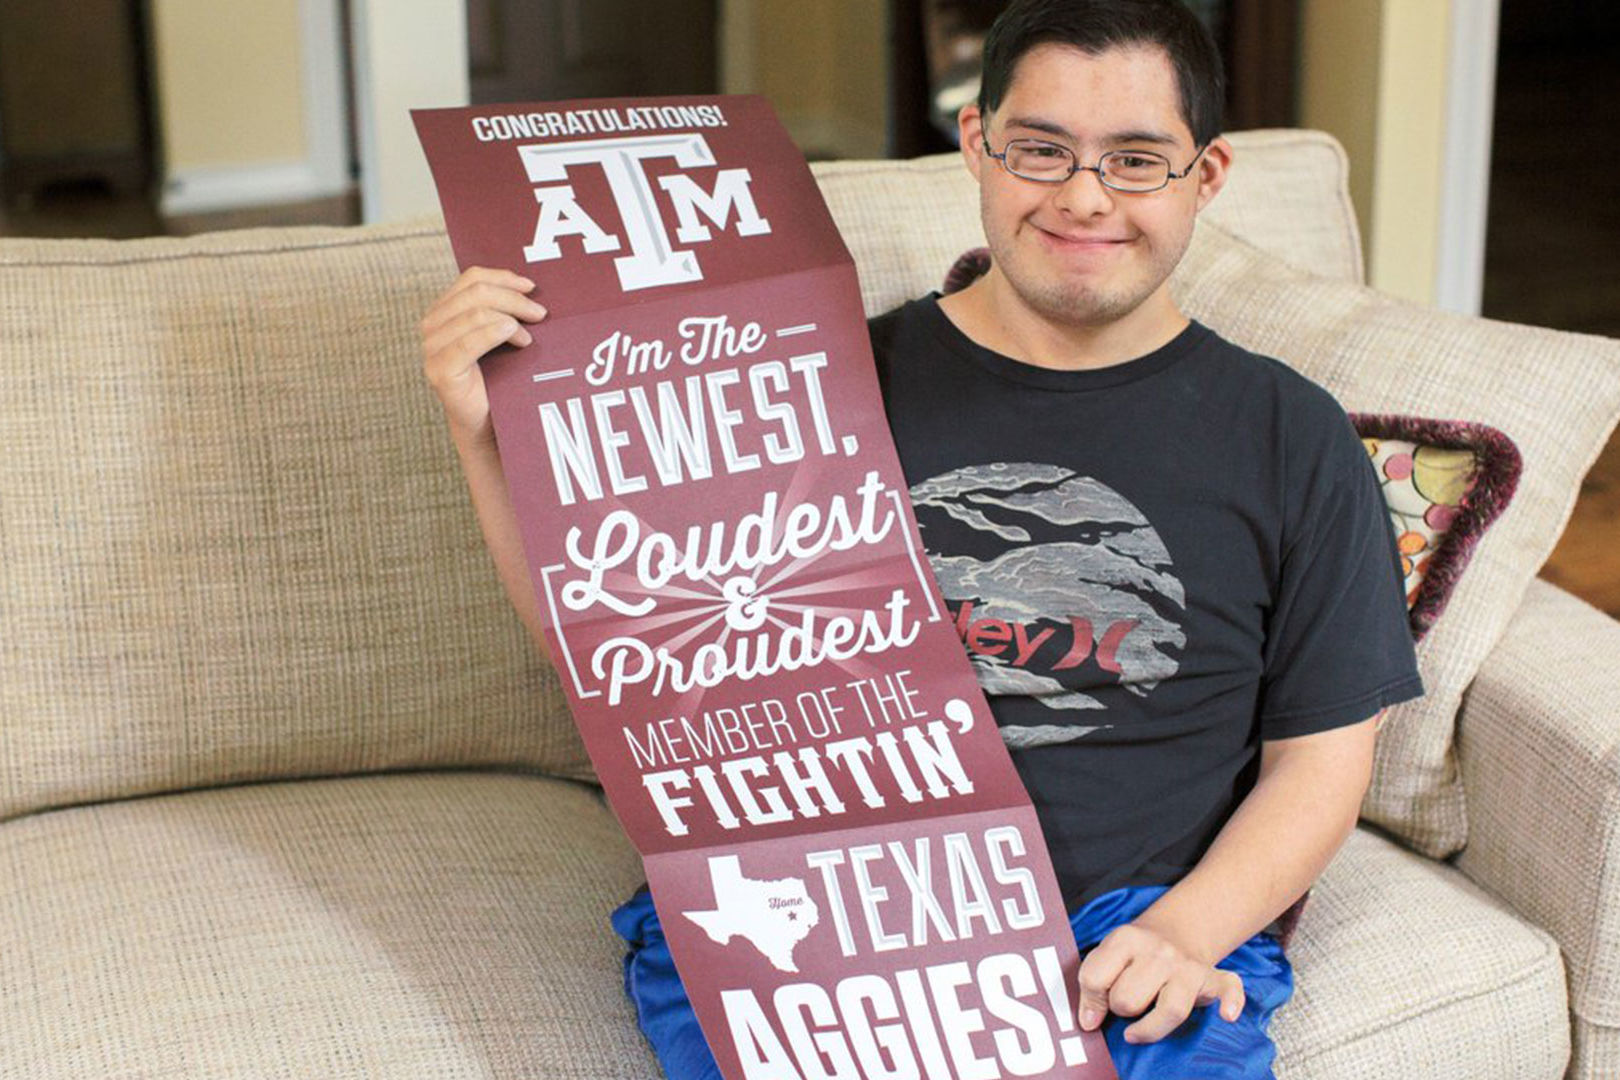 Texas A&M Launches Texas' First 4-Year College Program for Students with Disabilities